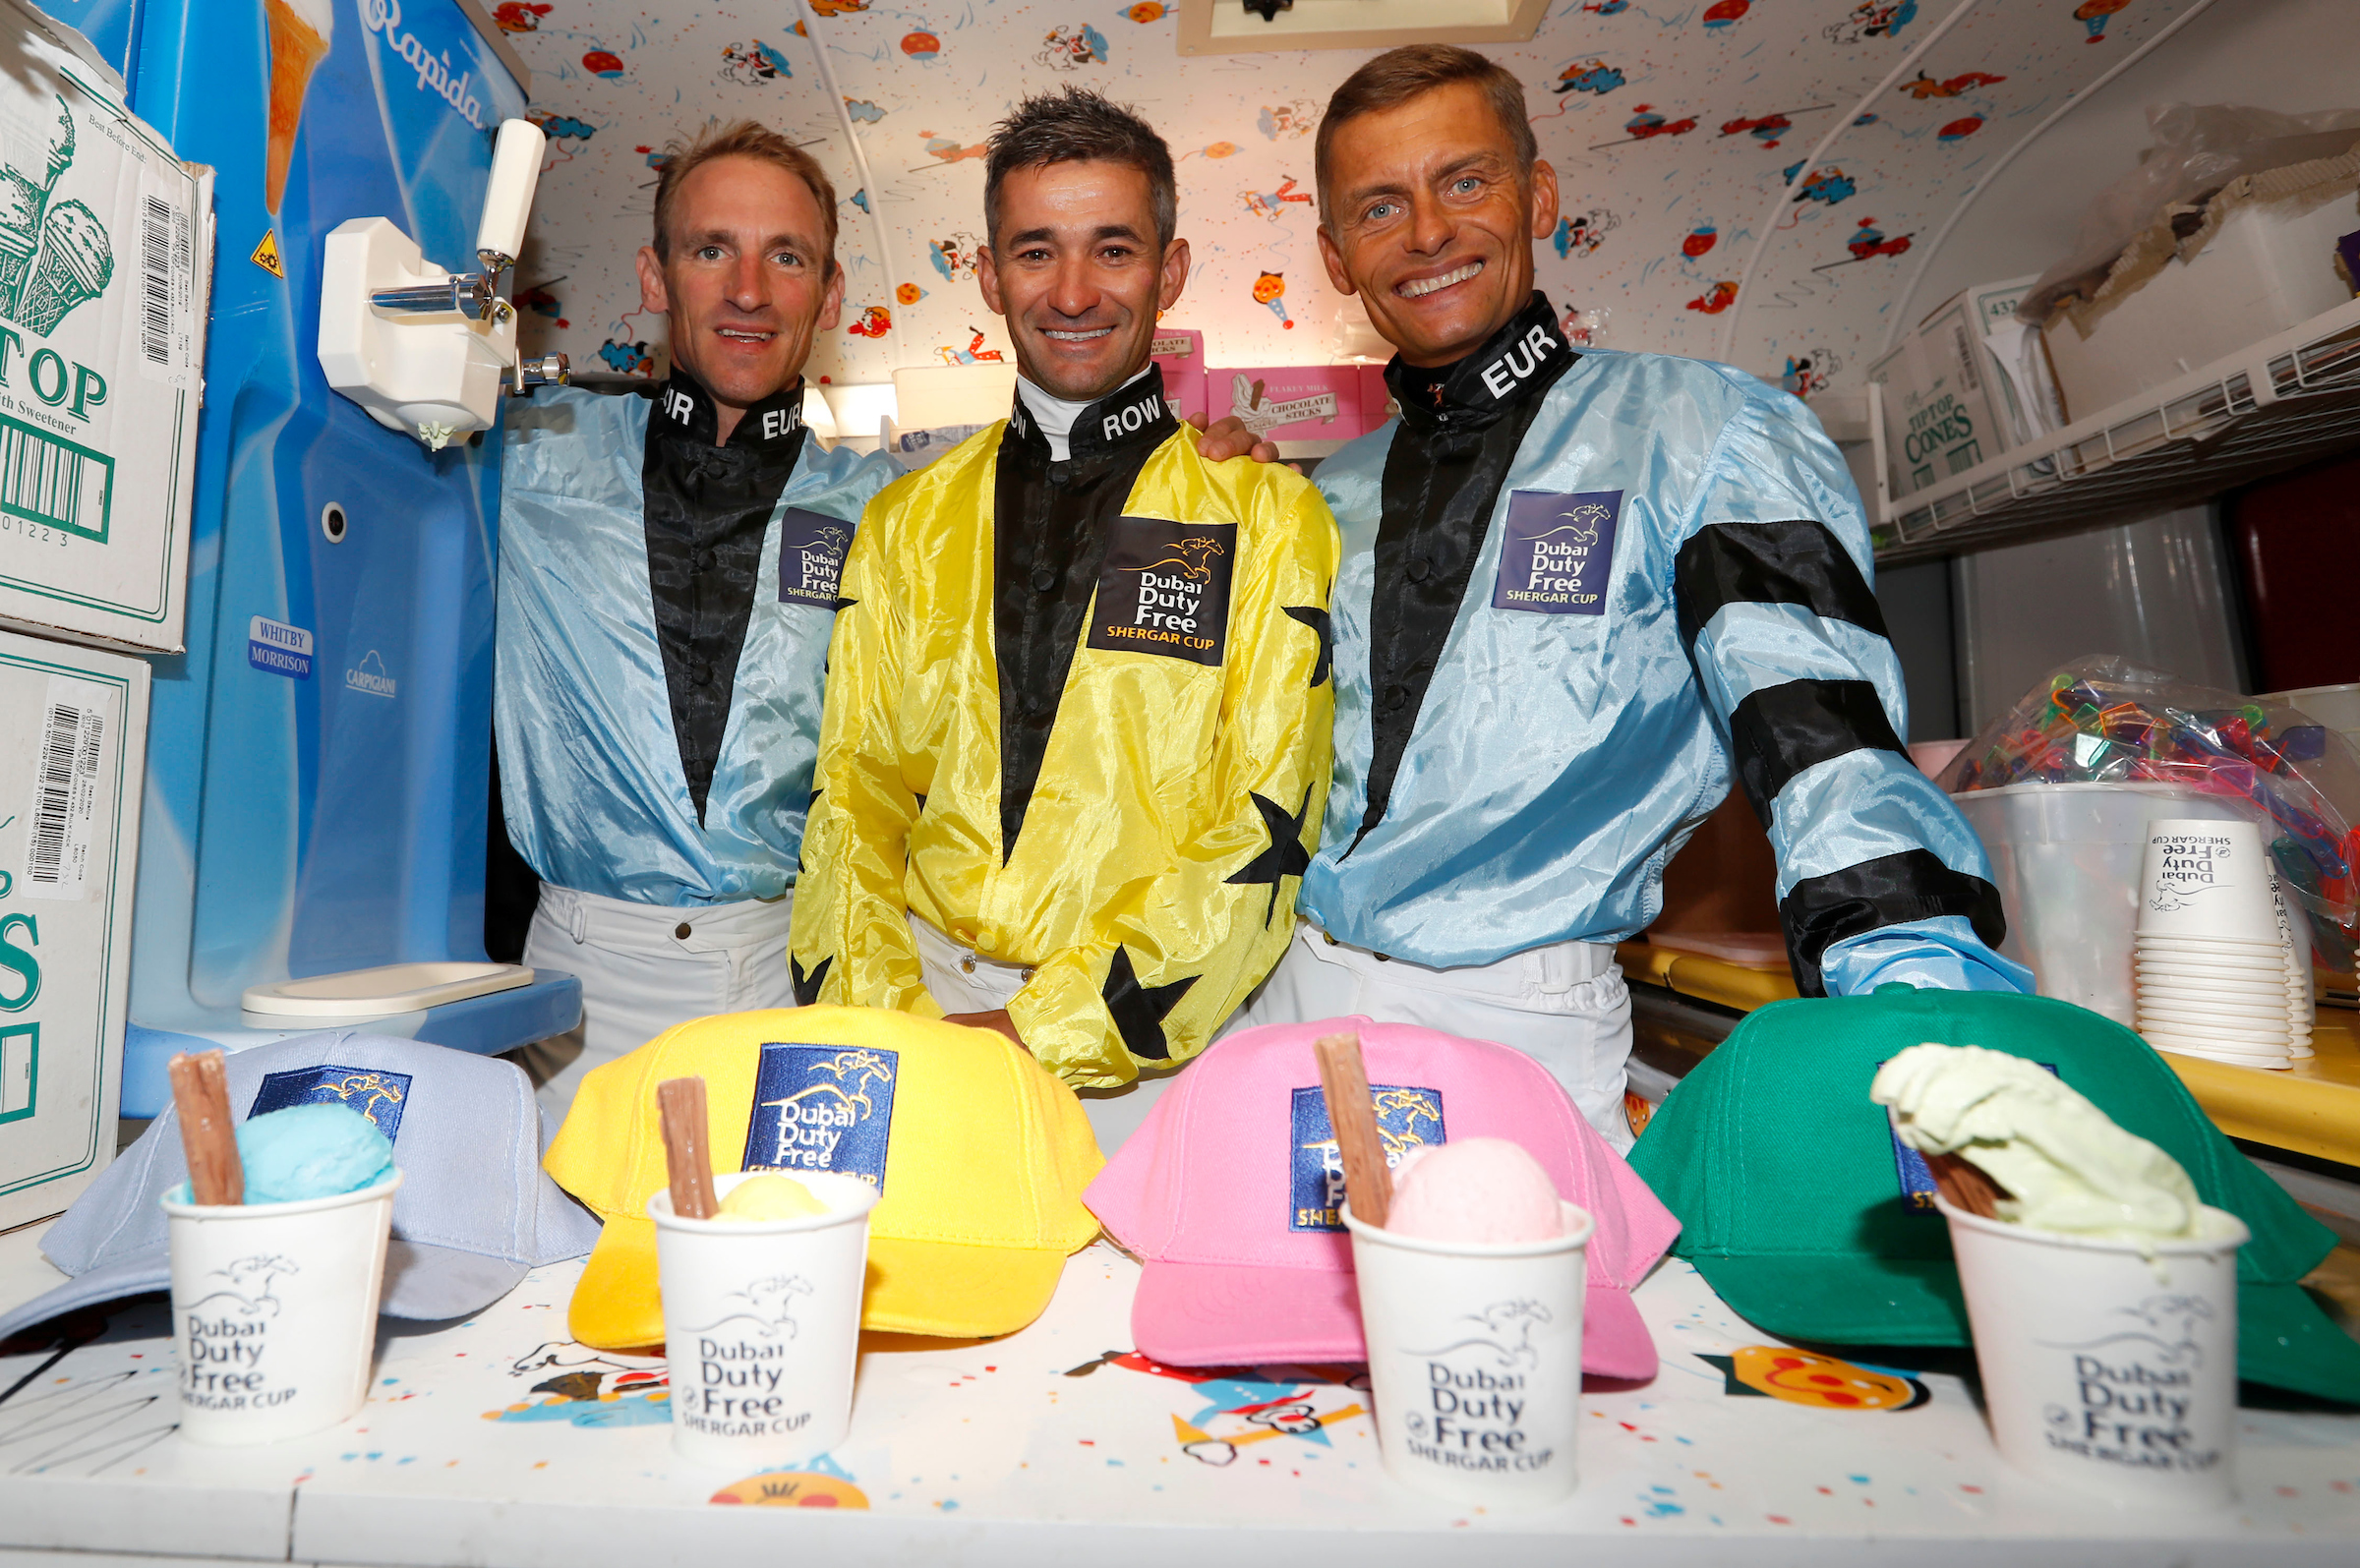 Andrasch Starke , Corey Brown and Per Anders-Graberg enjoying some ice cream in London before the Shergar Cup (Ascot)